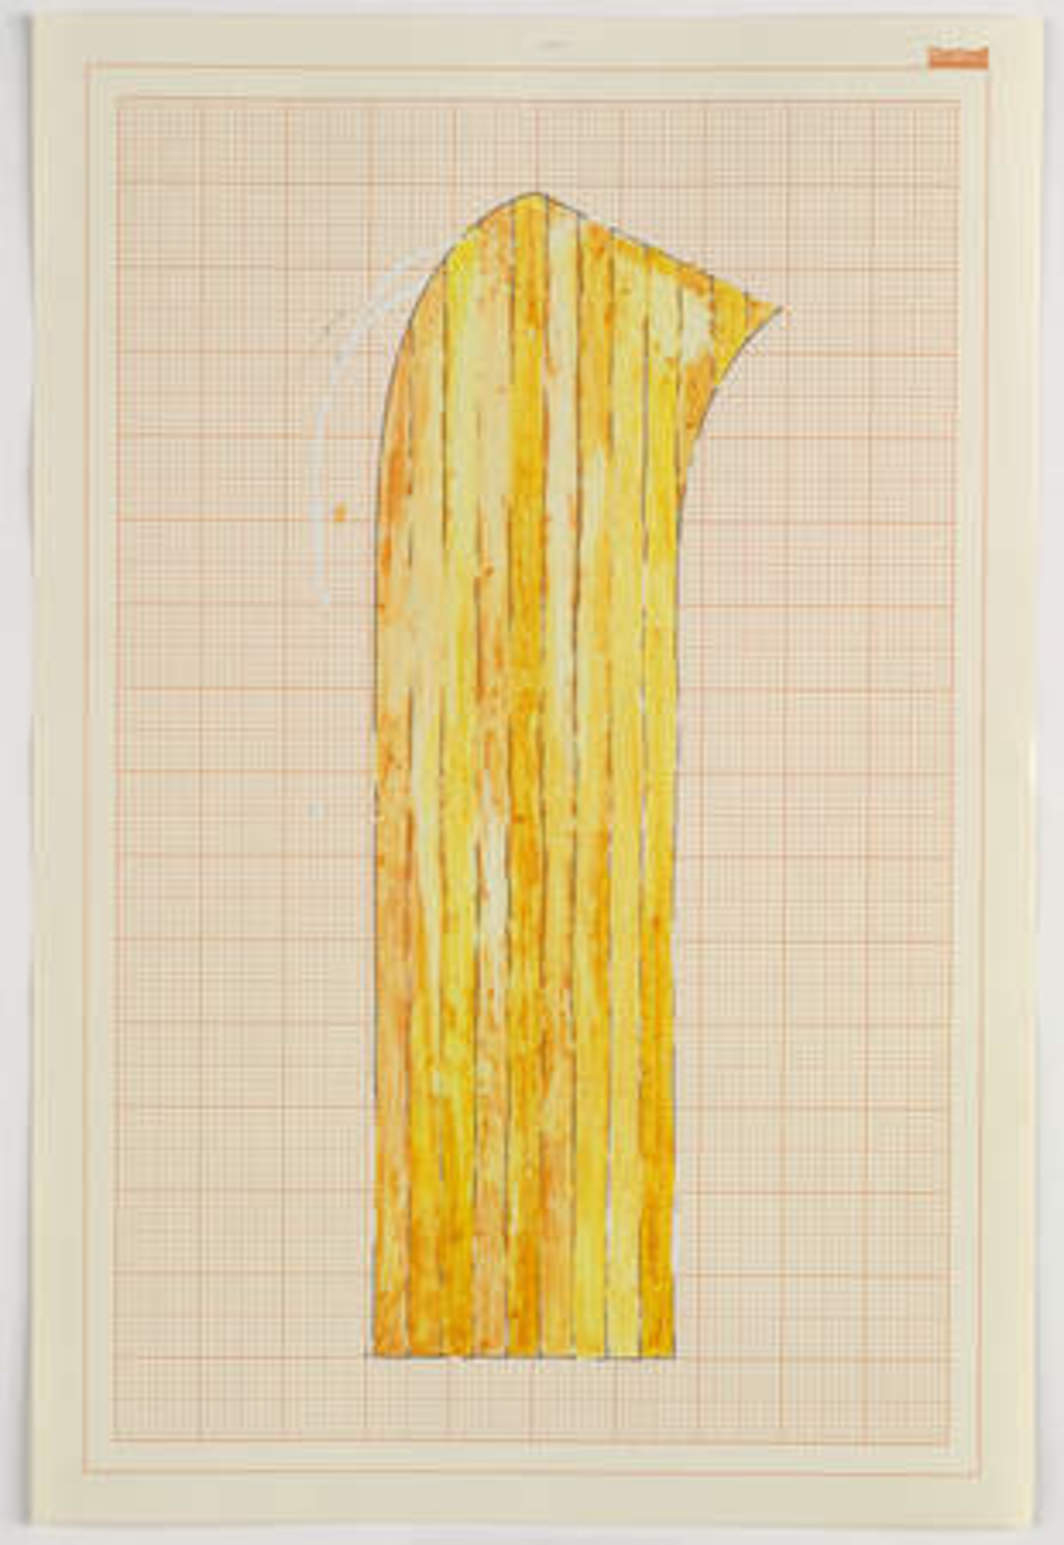 "Rachel Whiteread, Study for Wax Floor, 1992, correction fluid, ink, and watercolor on graph paper. 17 7/8 x 12""."